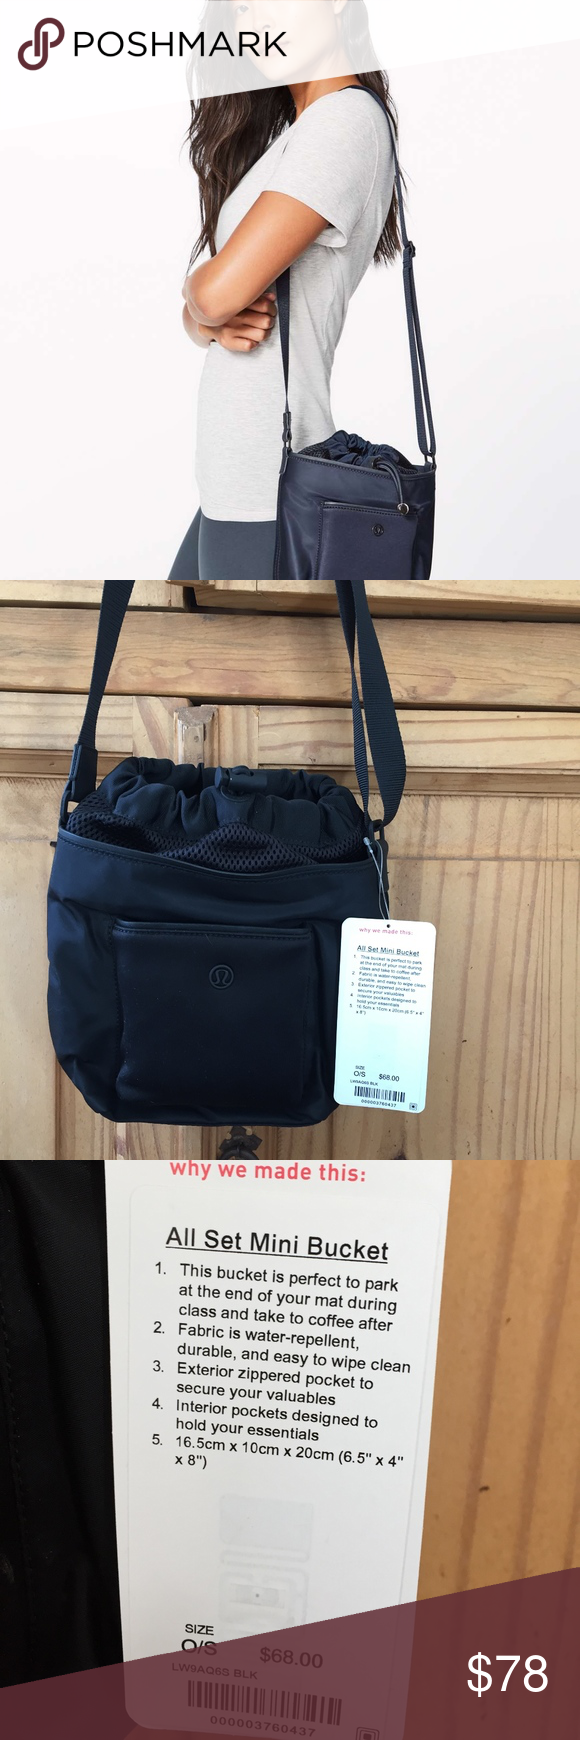 9c8ac97b NW Tags lululemon All Set Mini Bucket Purse Brand New with tags! Fun and  different purse- great size for every day. lululemon athletica Bags